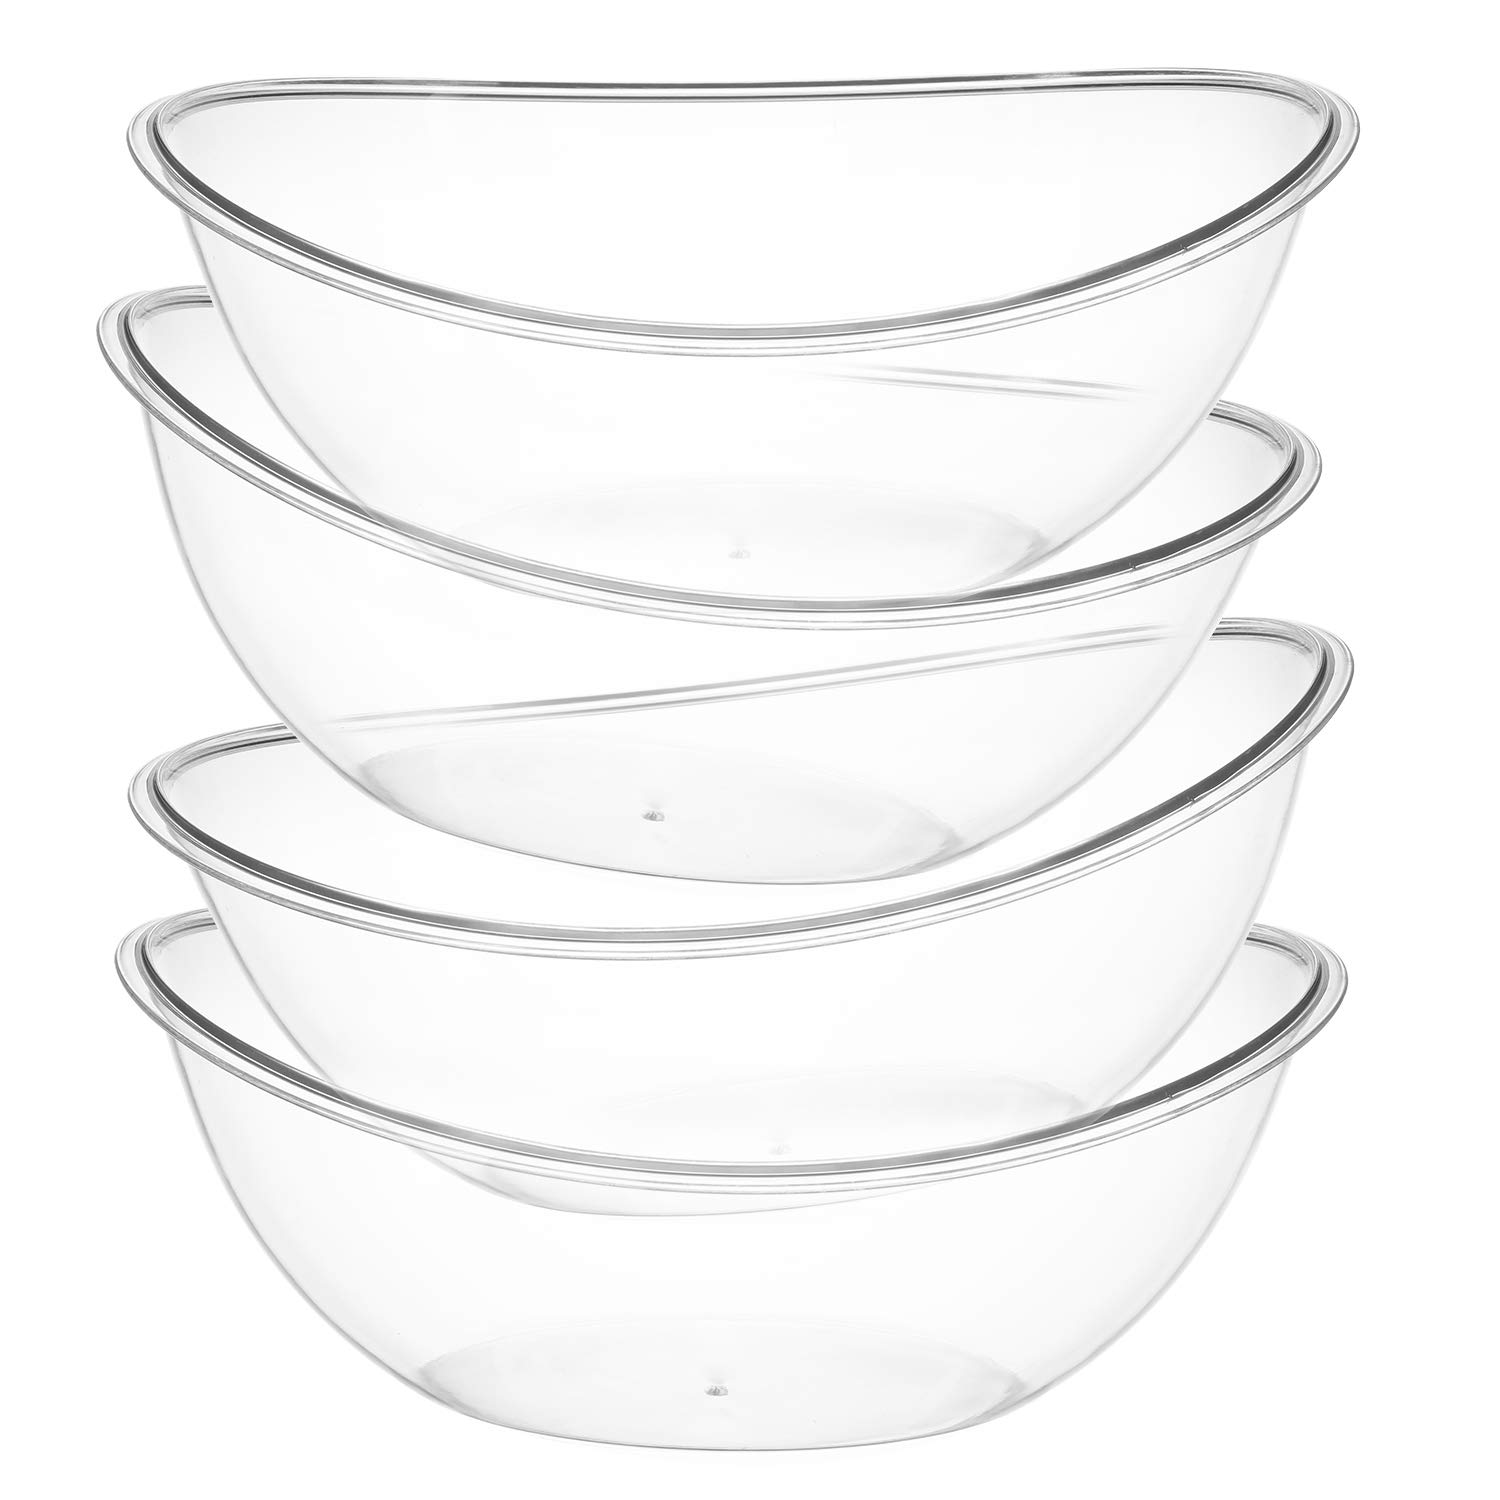 ChefCity Set of 4 – Oval Plastic Serving Bowls – Party Snack or Salad Disposable Bowl, 80-Ounce,